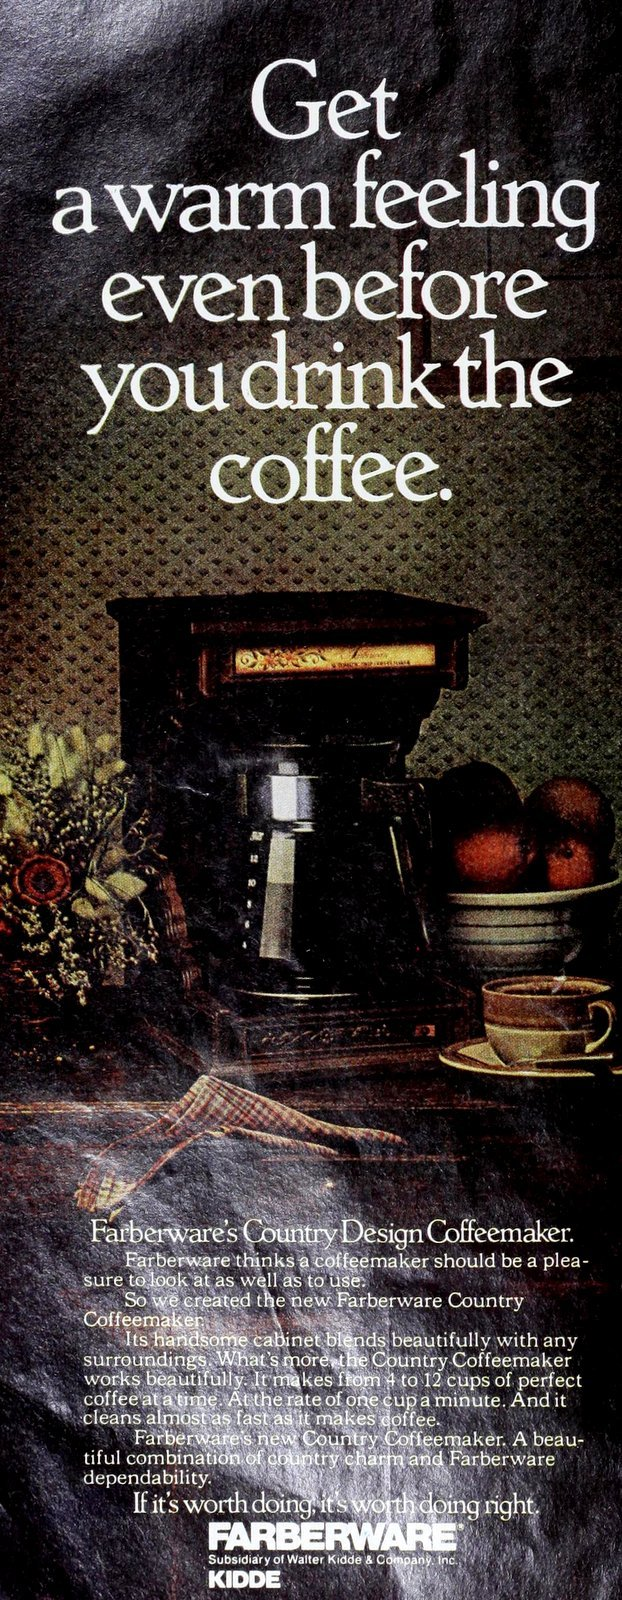 Farberware coffee maker - Country design (1977)